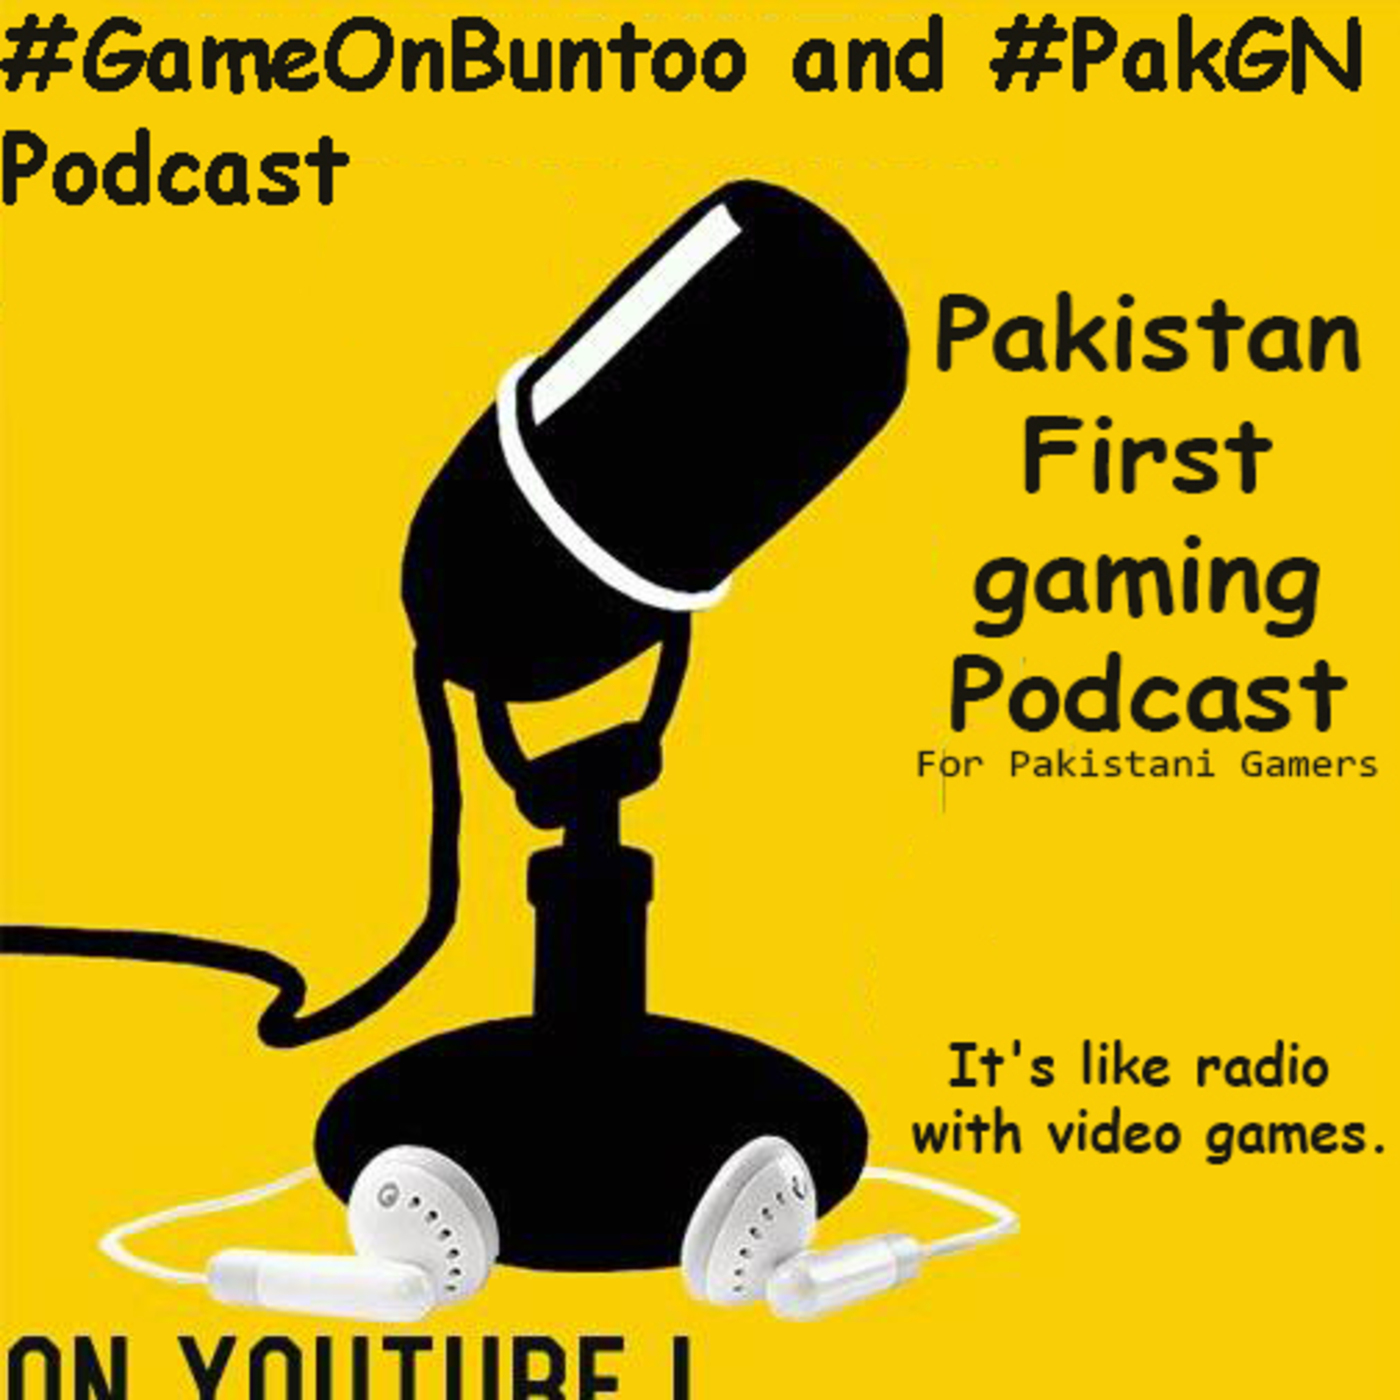 PAKGN's Podcast